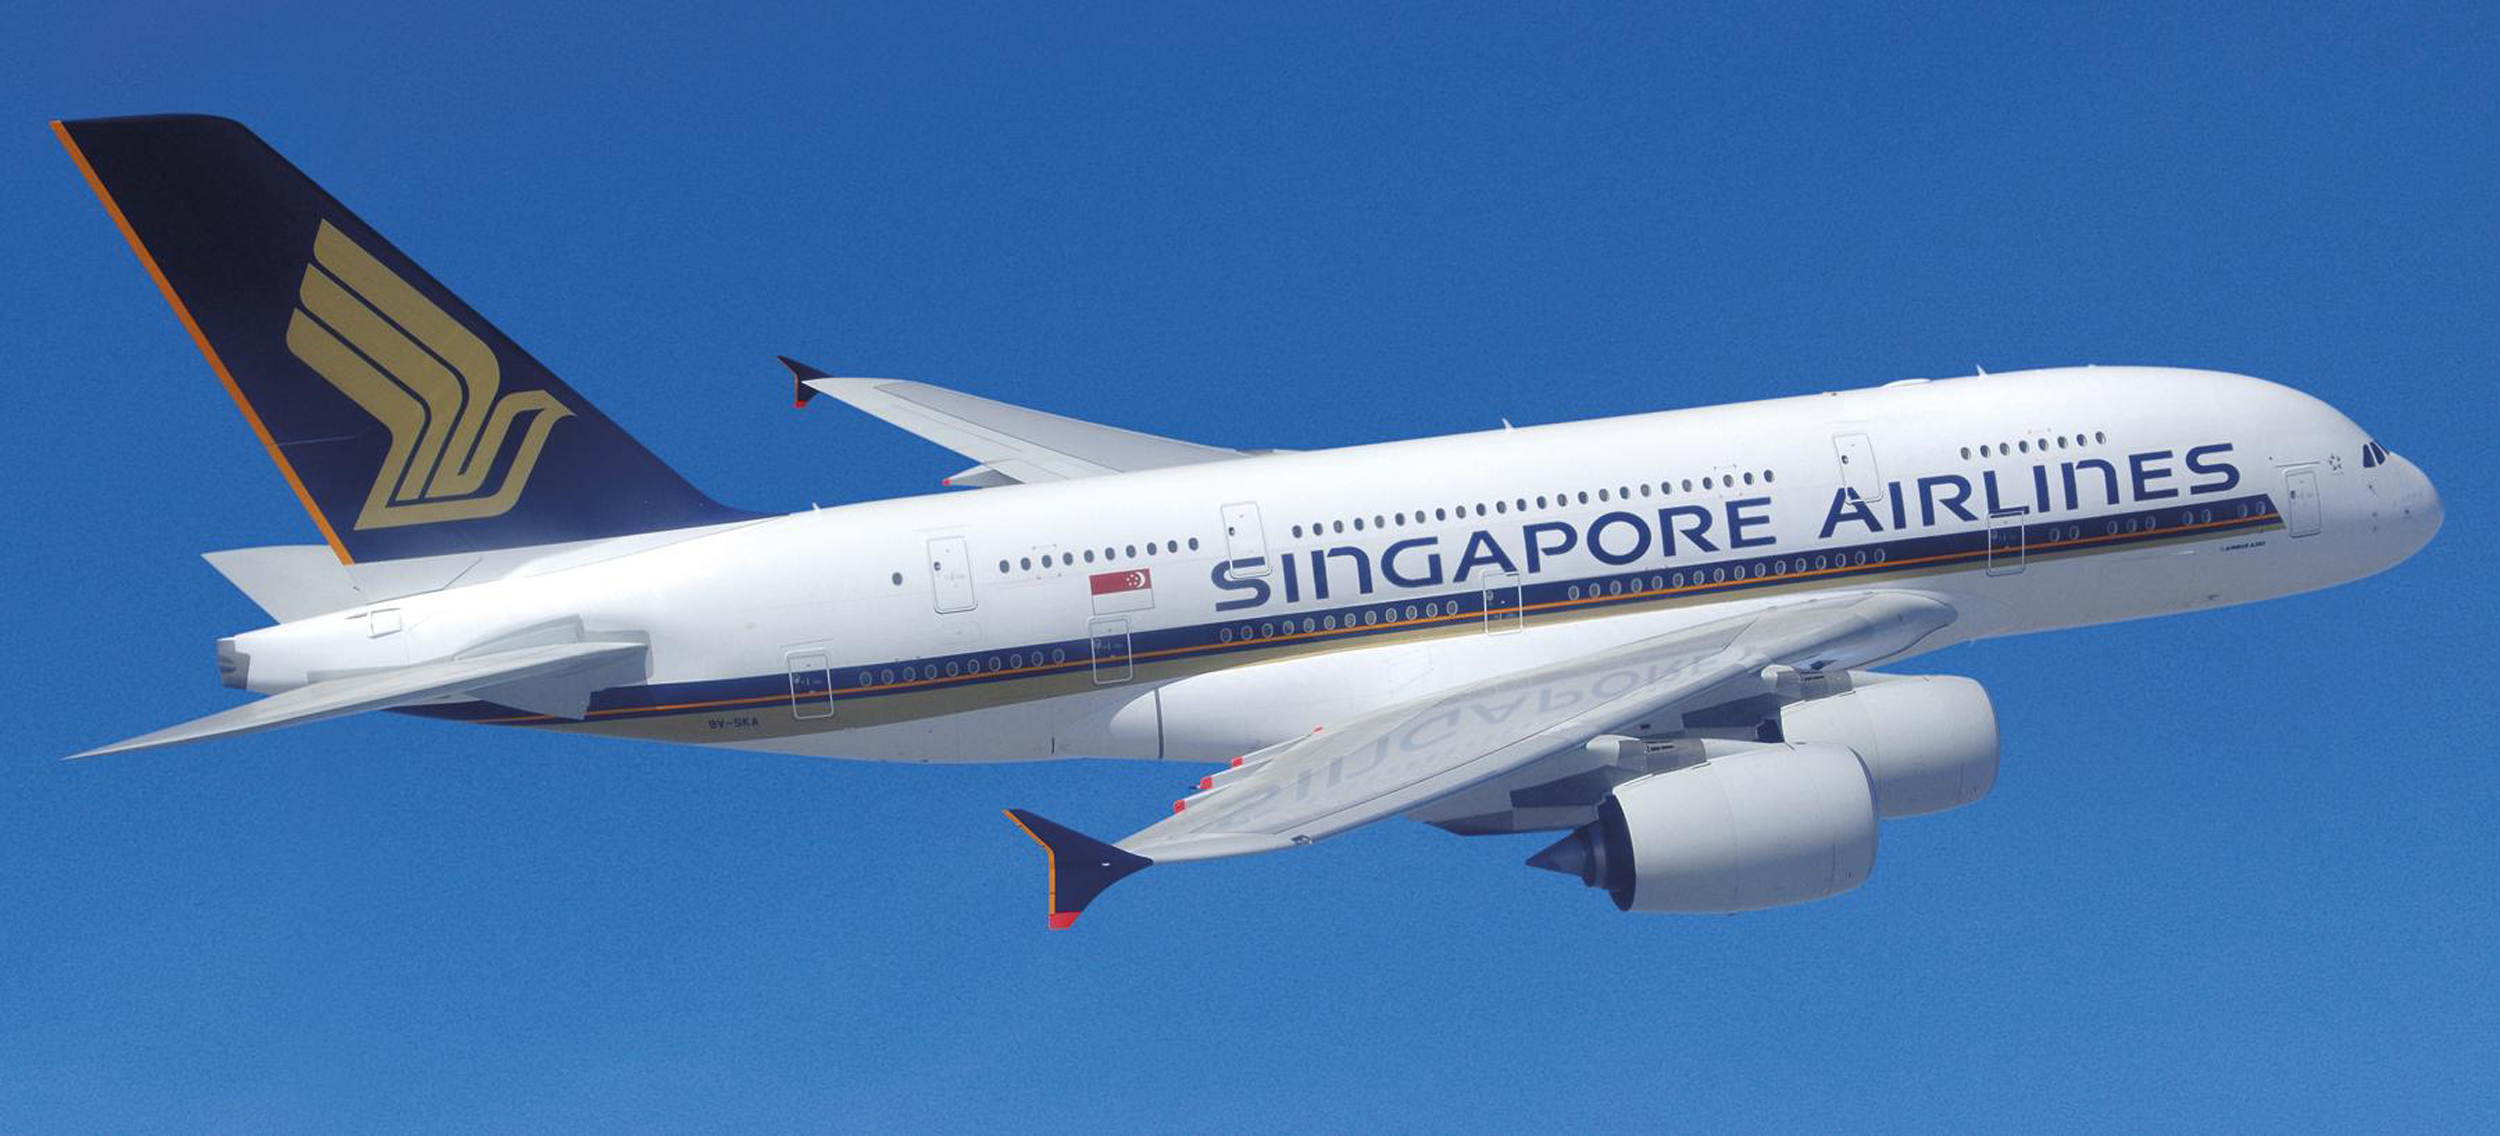 singapore_airlines_airbus_a380_w55cd